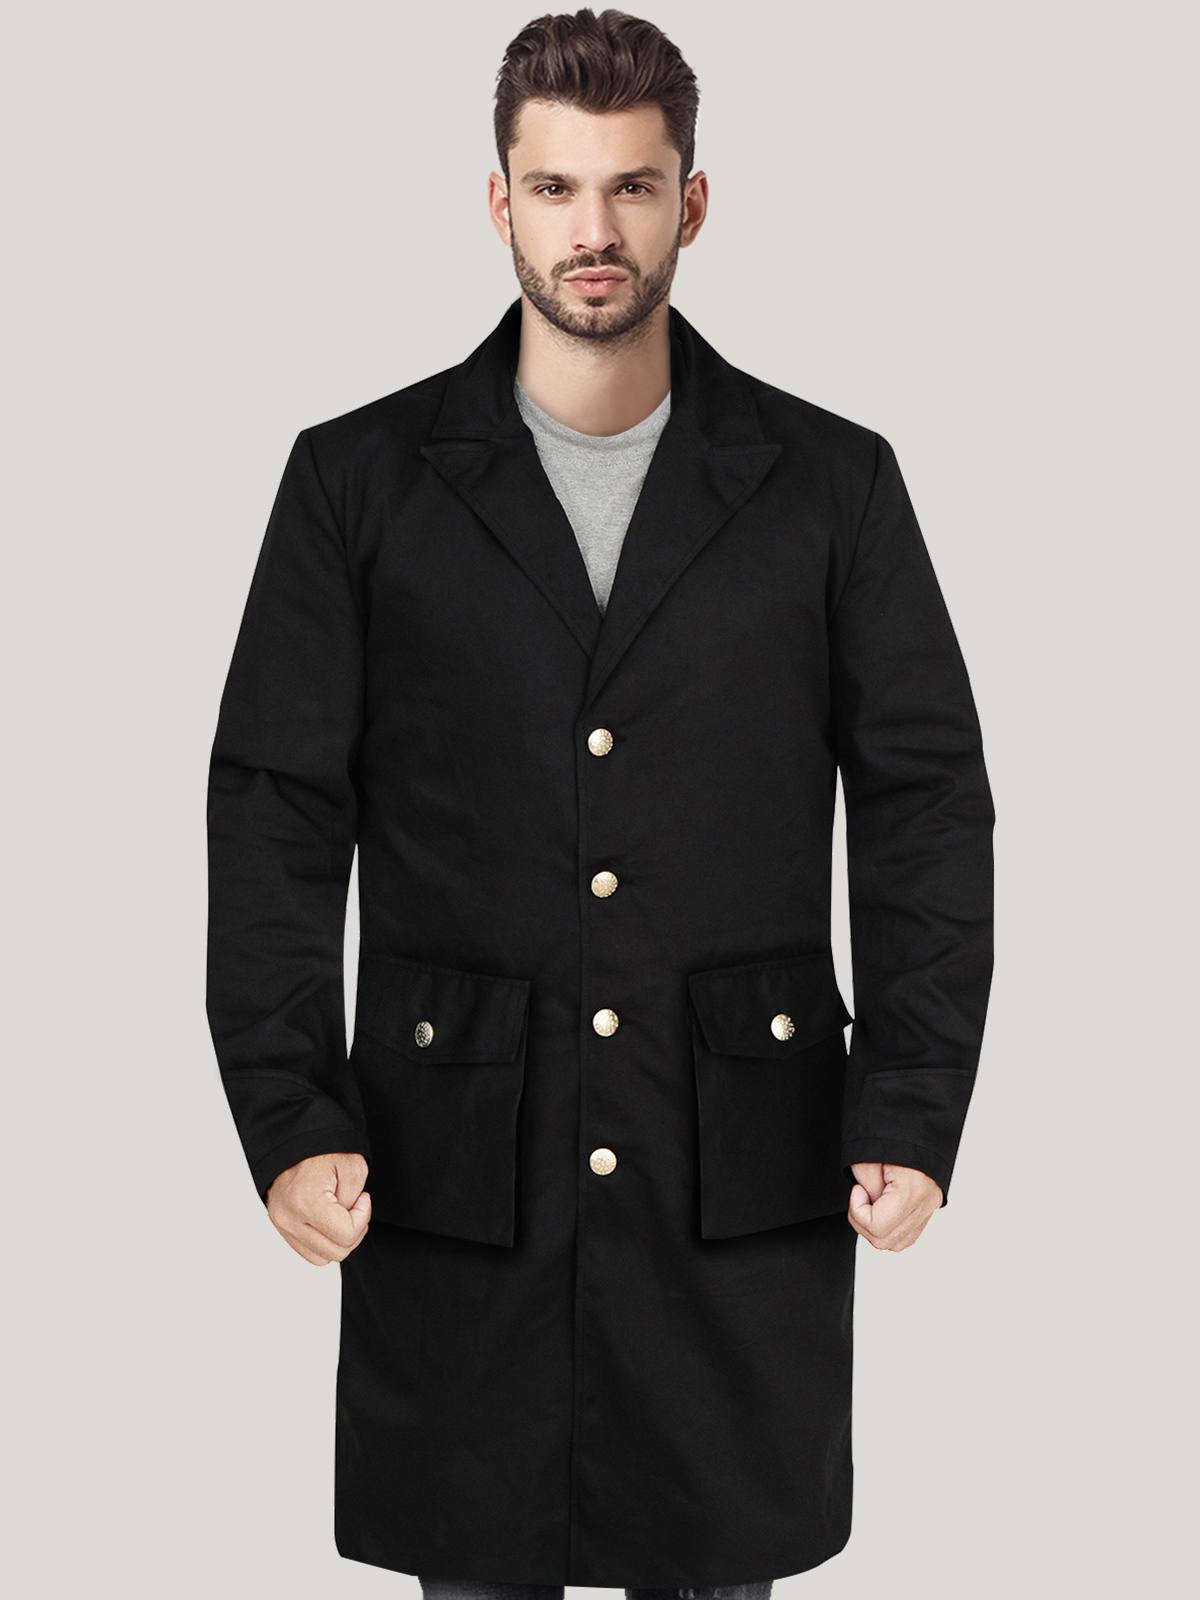 Men's Black Single Breasted Cotton and Wool Coat